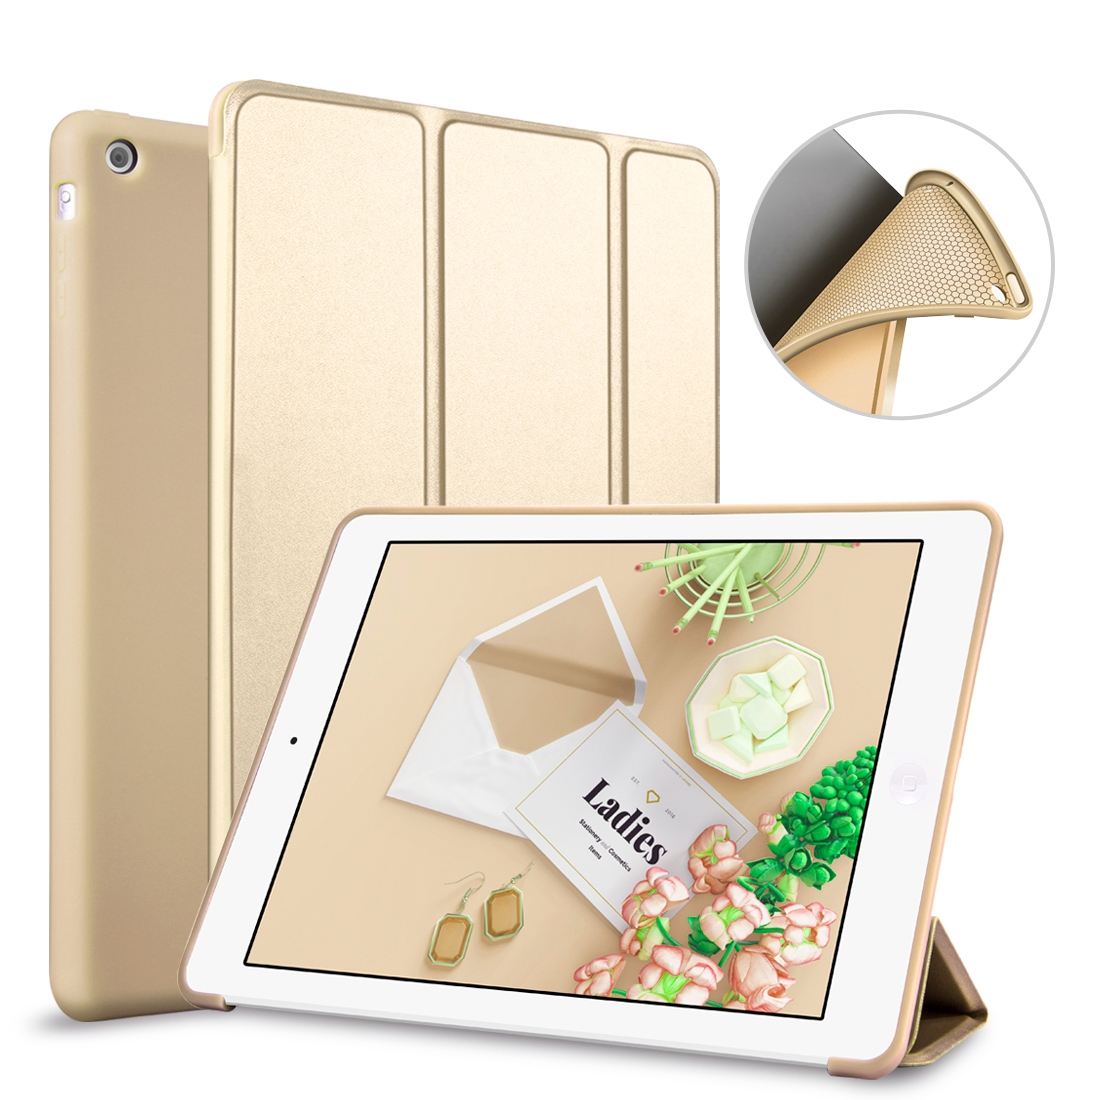 For Apple iPad Air 2/ iPad 6,Silicone Case Smart Cover Soft TPU Case PU Leather Flip Stand Auto Sleep/Wake the tablet high quality thickening tpu silicone cover for ipad air ipad 5 case fashion soft transparent froste cover air1 tablet pc stand